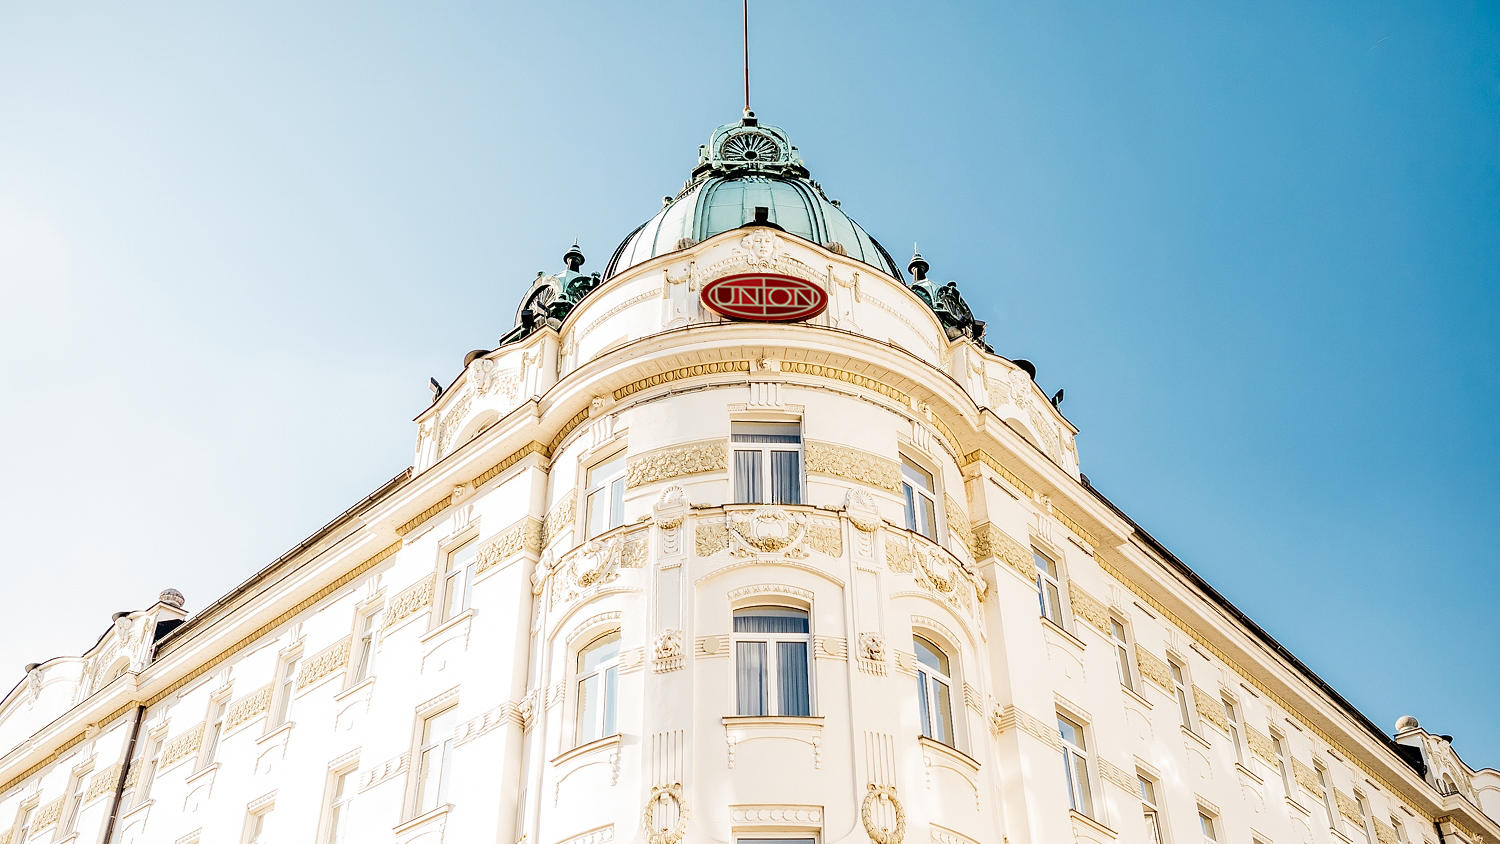 Facade from Grand Hotel Union in Ljubljana